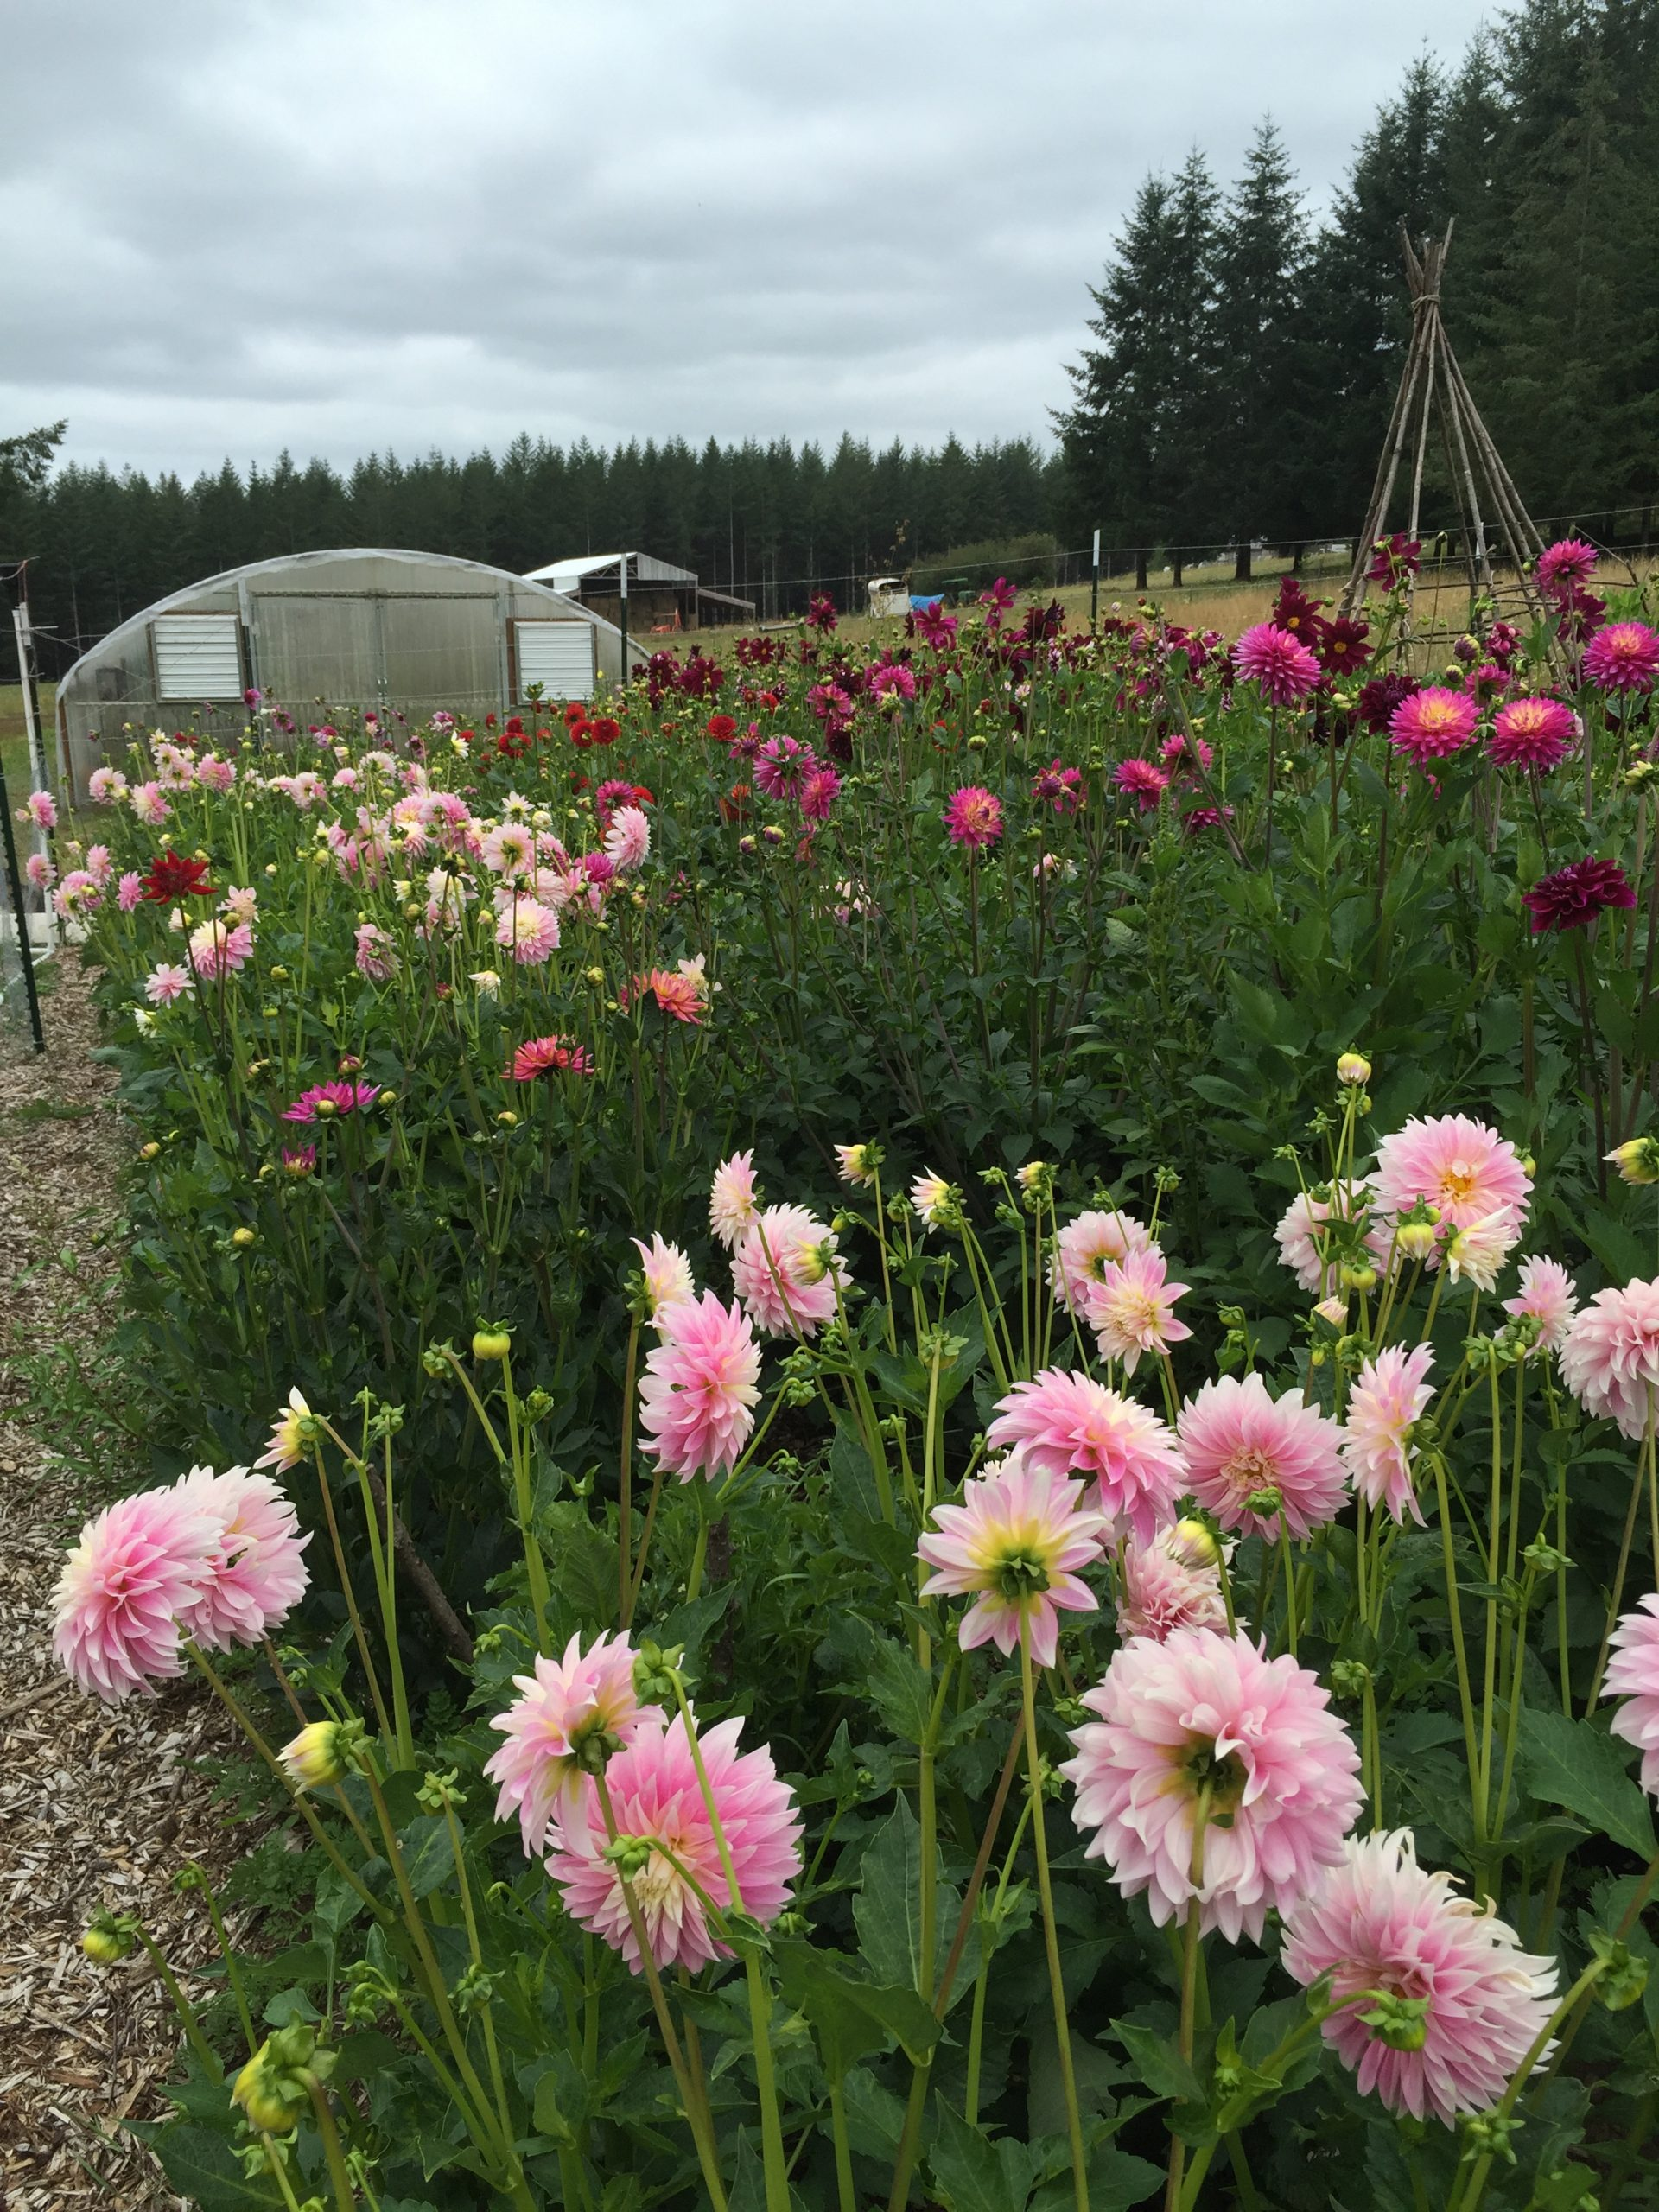 Evelyn's Garden Dahlia Tuber Farm, with pink 'Alloway Candy Dahlias' and the greenhouse in the background